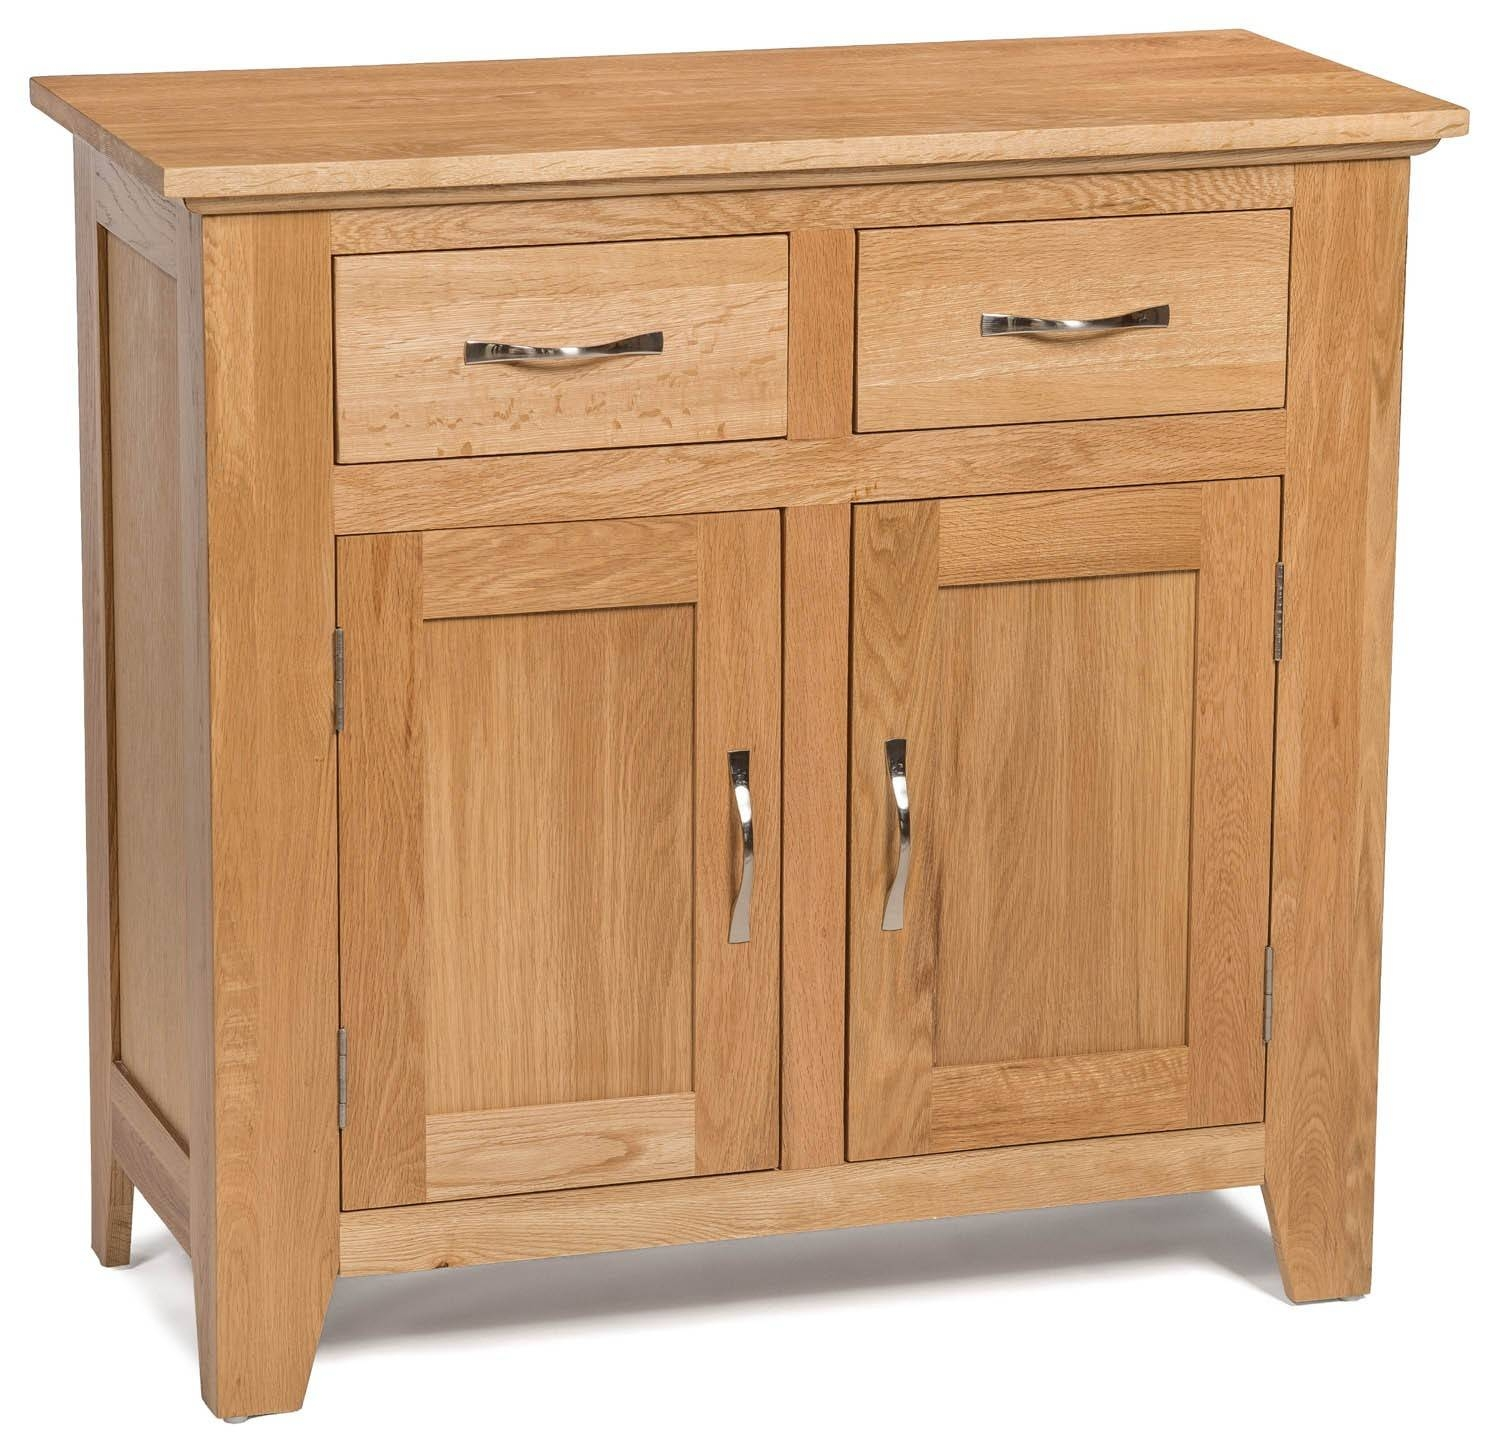 Camberley Oak Small 2 Door 2 Drawer Sideboard - Sideboards & Tops throughout Sideboards With Drawers (Image 4 of 15)